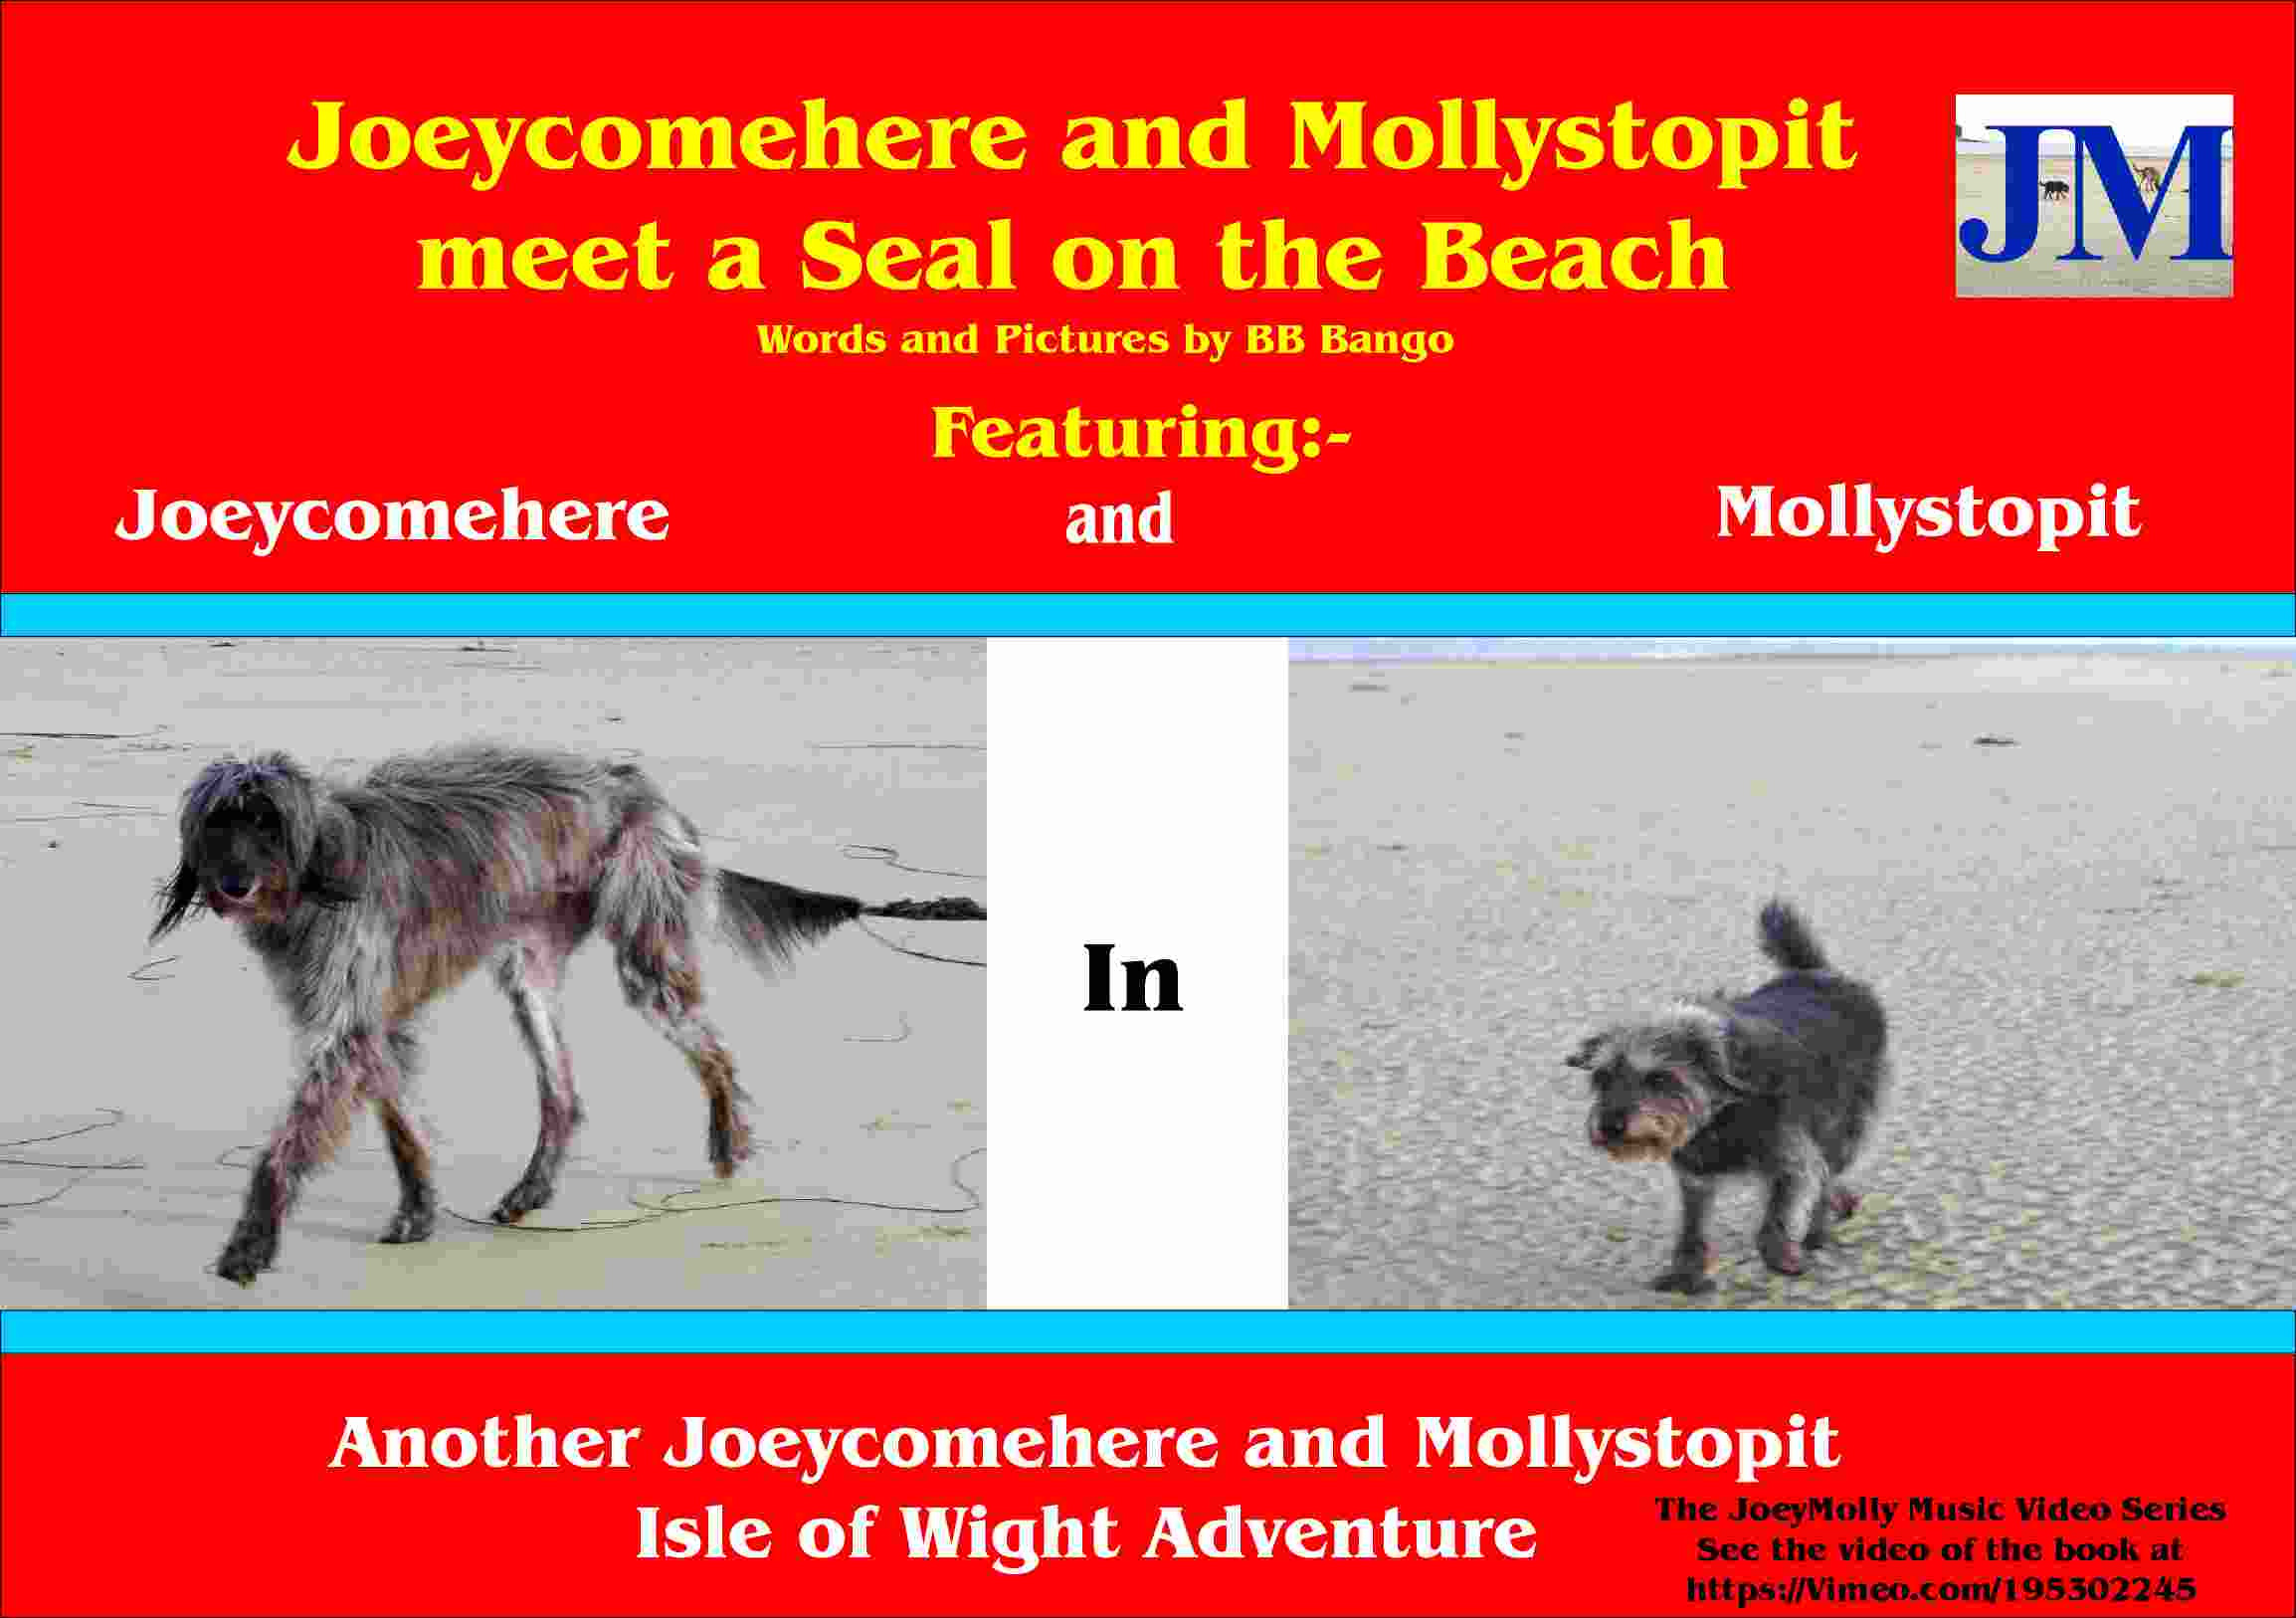 Now available on Kindle. Joeycomehere and Mollystopit meet a seal on the beach. Part of a series of Wight Adventures written by BB Bango and published by ClayClay. Copies of book in  A5 format available direct from the ClayClay Shop  This 3rd book  is also a music video